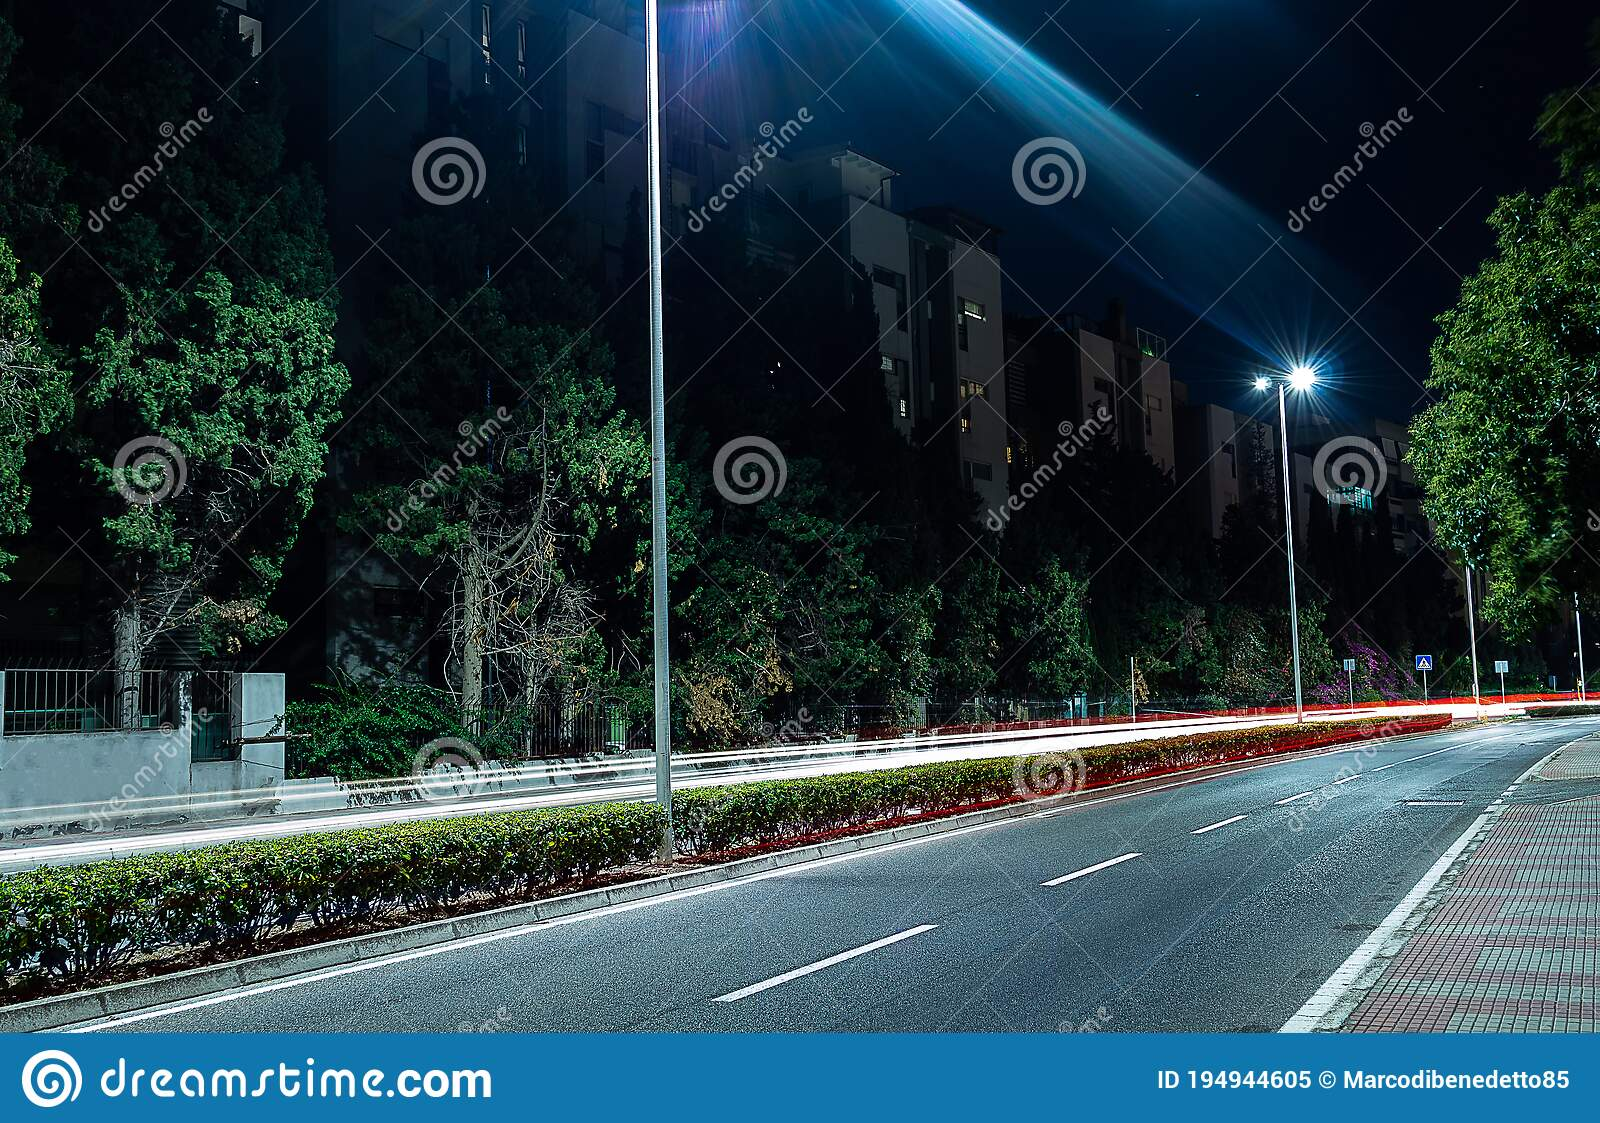 67 161 Road Night Lights Photos Free Royalty Free Stock Photos From Dreamstime